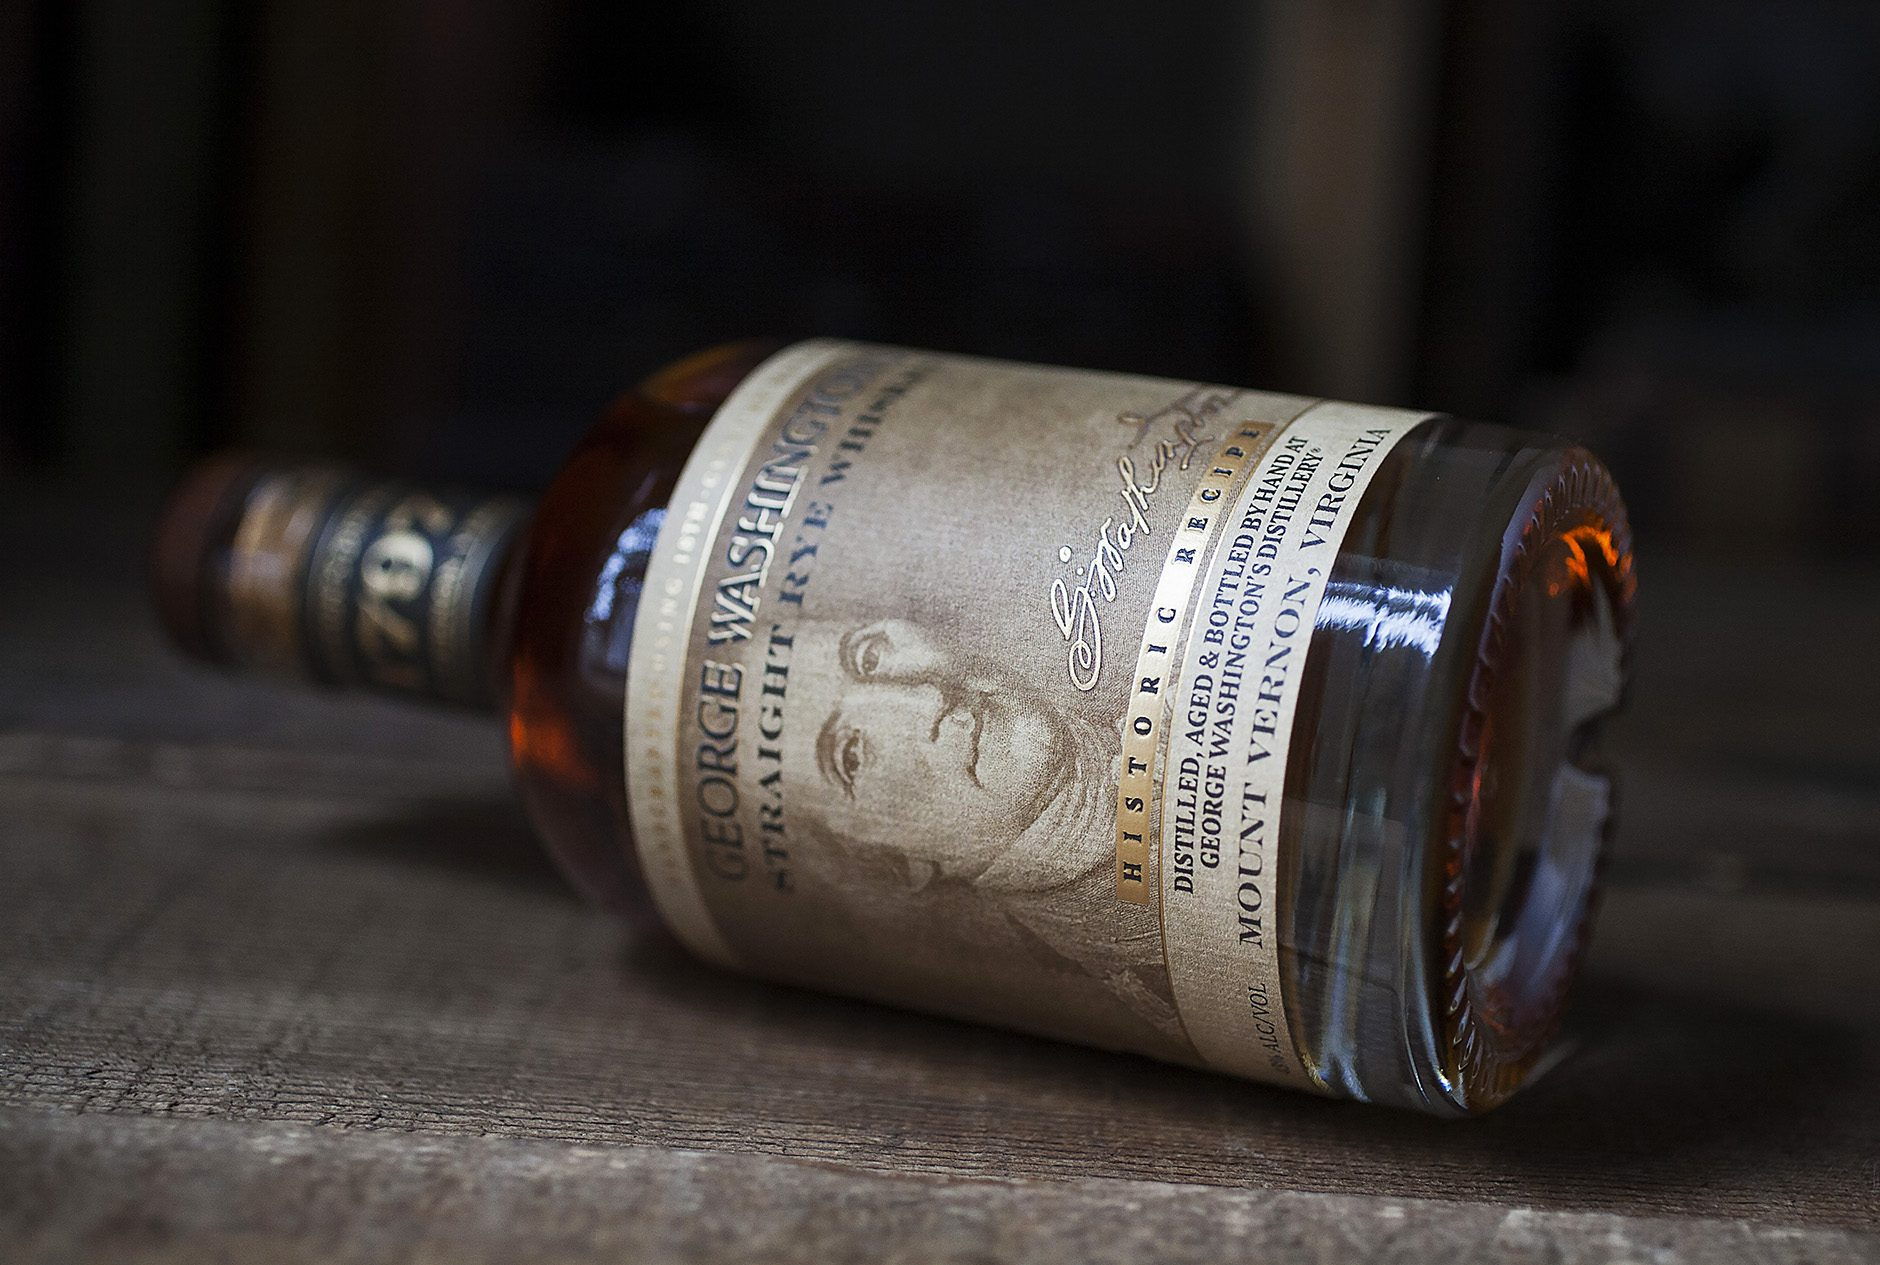 George Washington's Rye Whiskey, Mount Vernon.